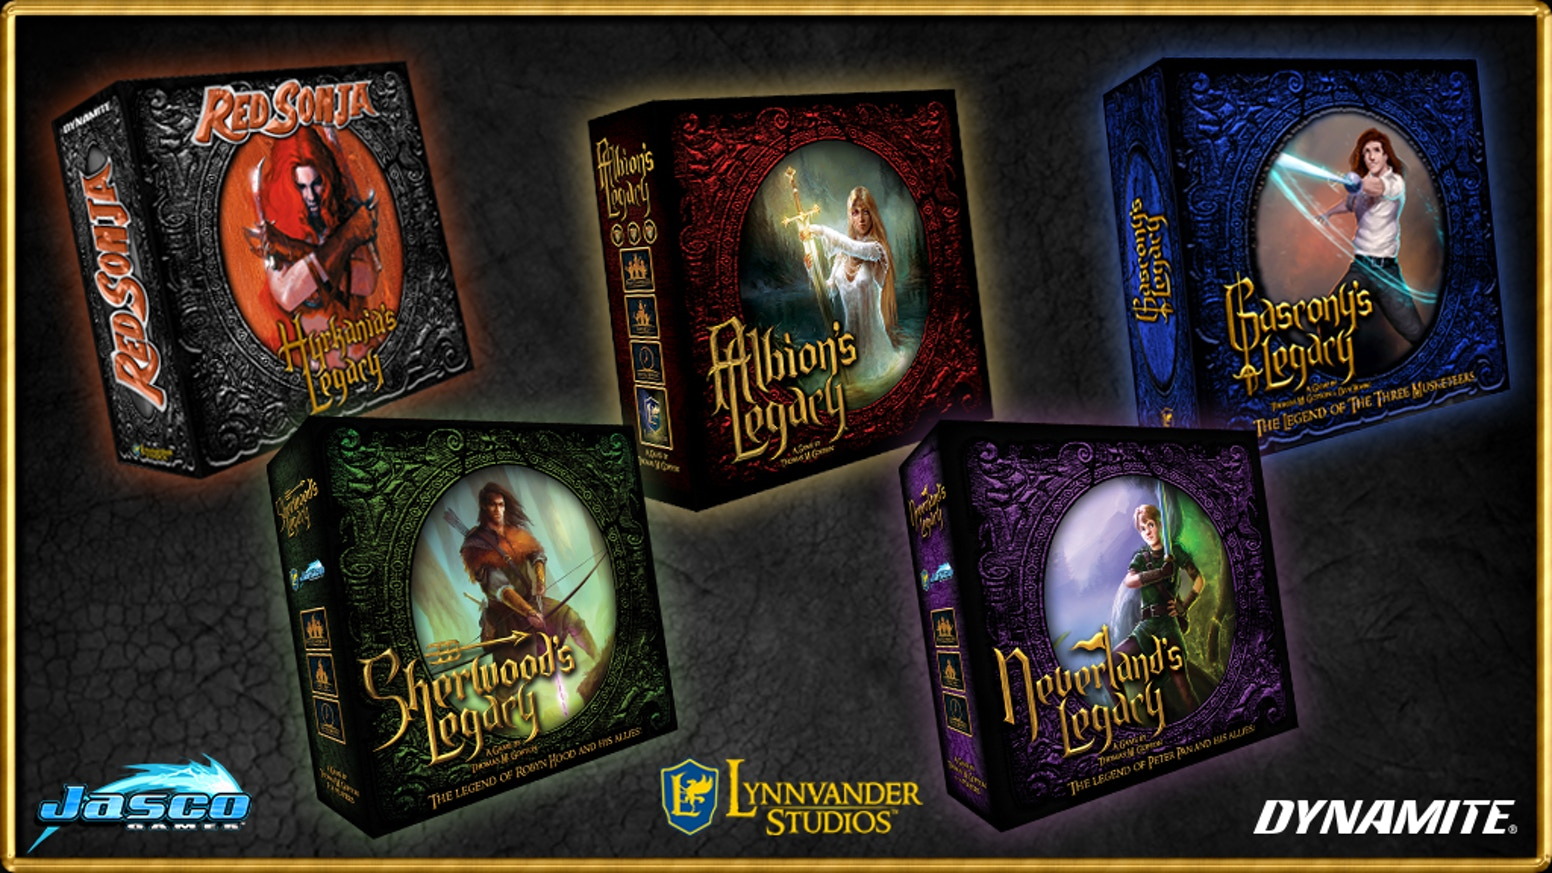 A re-launch of the entire Legacy Line of board games. Albion's, Sherwood's, Neverland's, Gascony's and Hyrkania's Legacy content.